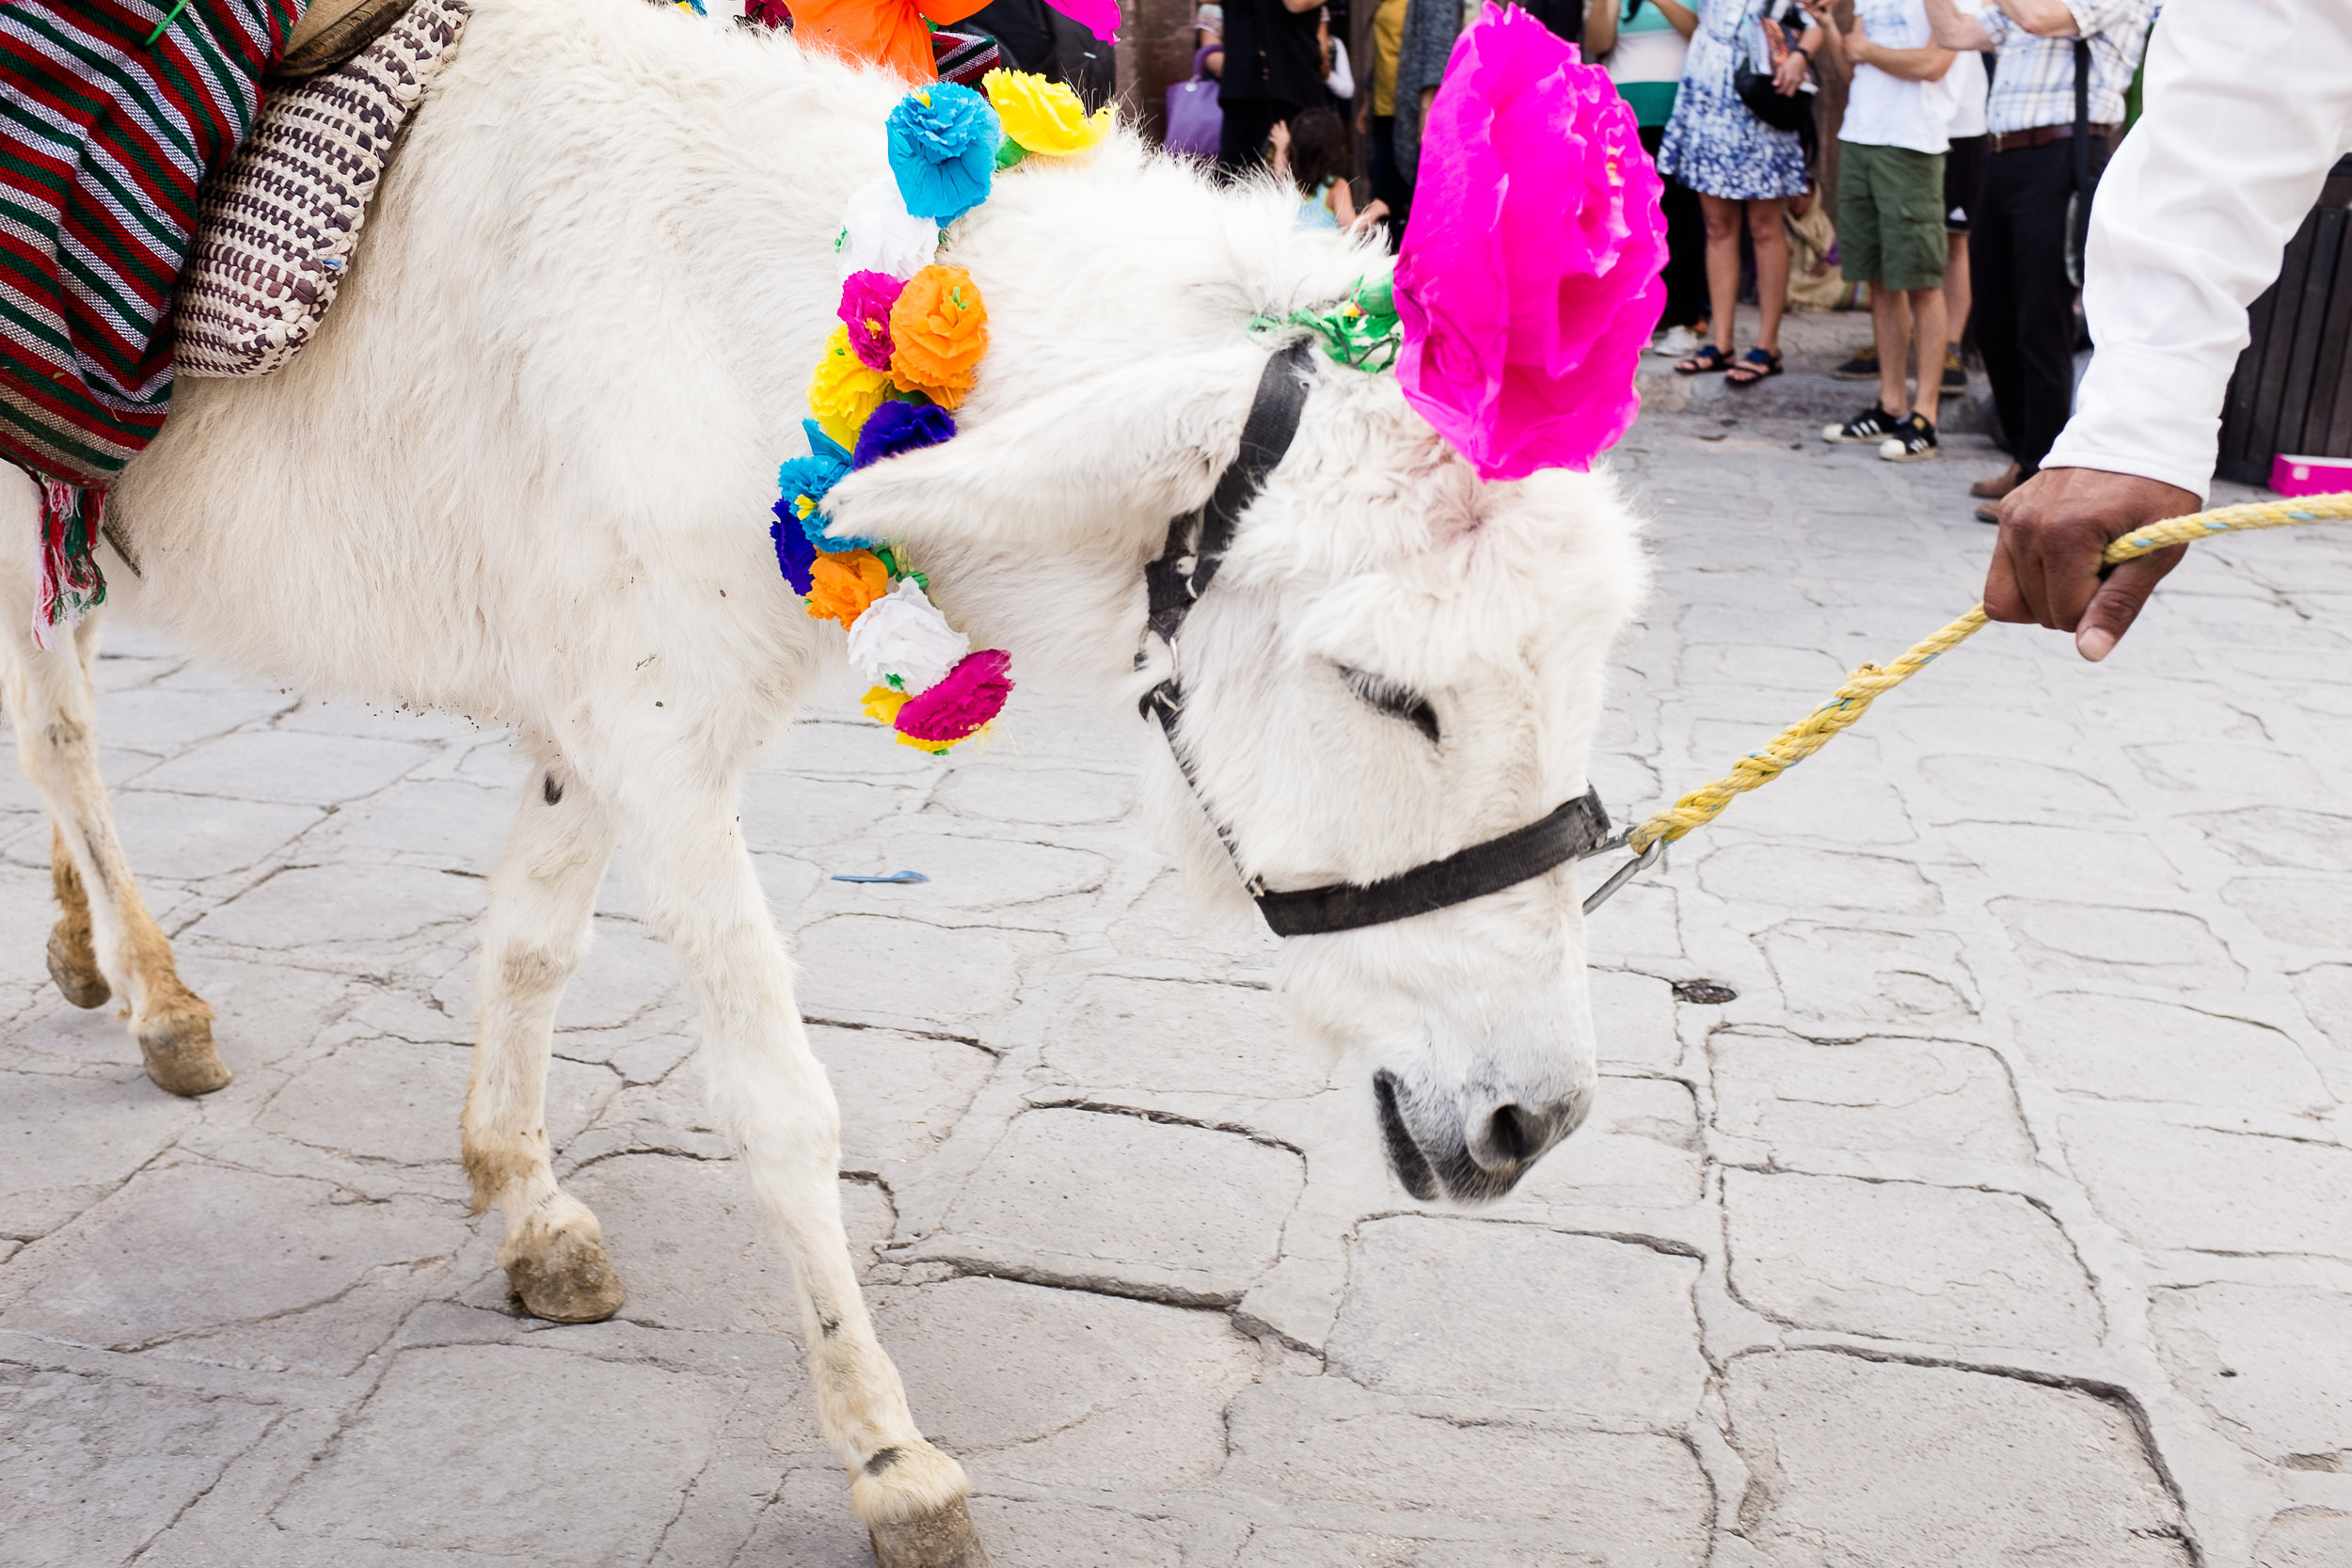 mexican-fine-art-wedding-traditions-donkey-mexico-karina-mora-prints-4.jpg